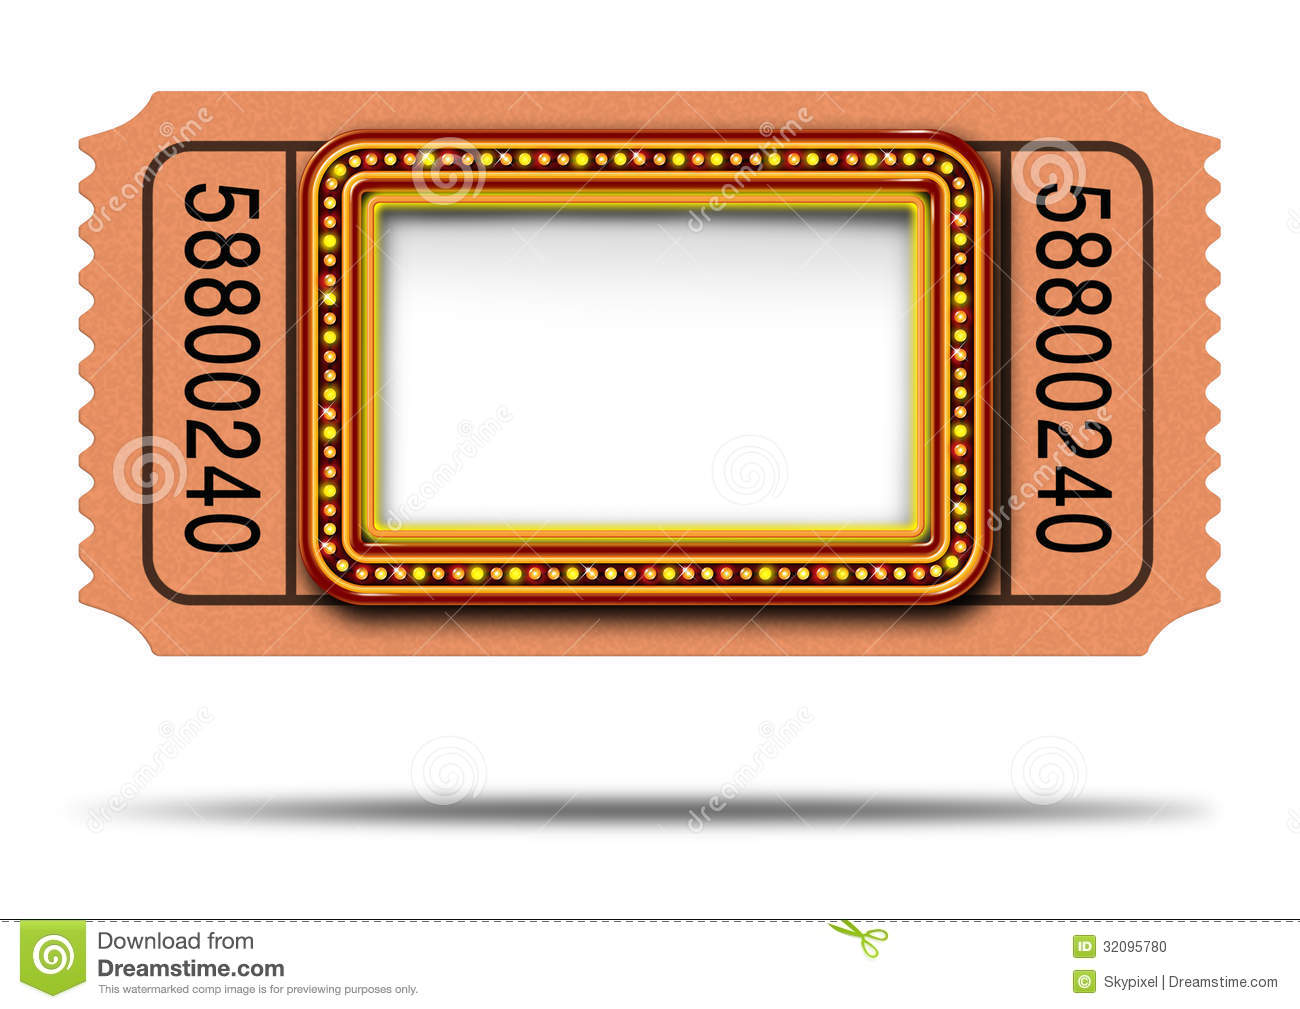 hight resolution of movie marquee ticket with blank copy space as a hollywood theater and cinema concept with a glowing group of lights on a sign frame as a billboard icon for